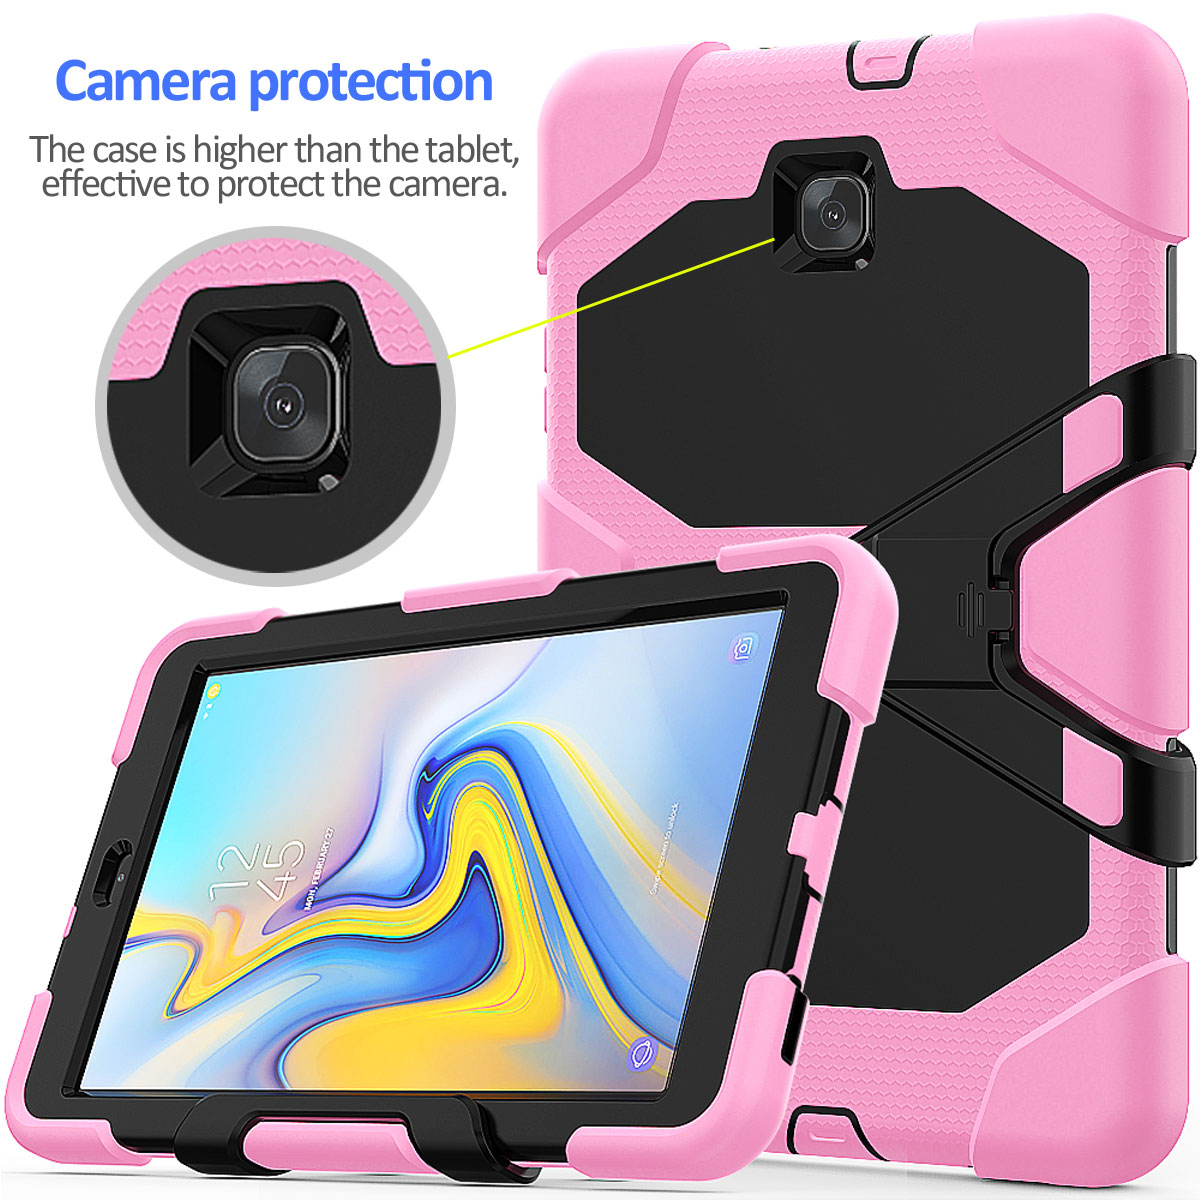 Rugged-Hard-Case-For-Samsung-Galaxy-Tab-A-8-0-2018-SM-T387-with-Screen-Protector thumbnail 51